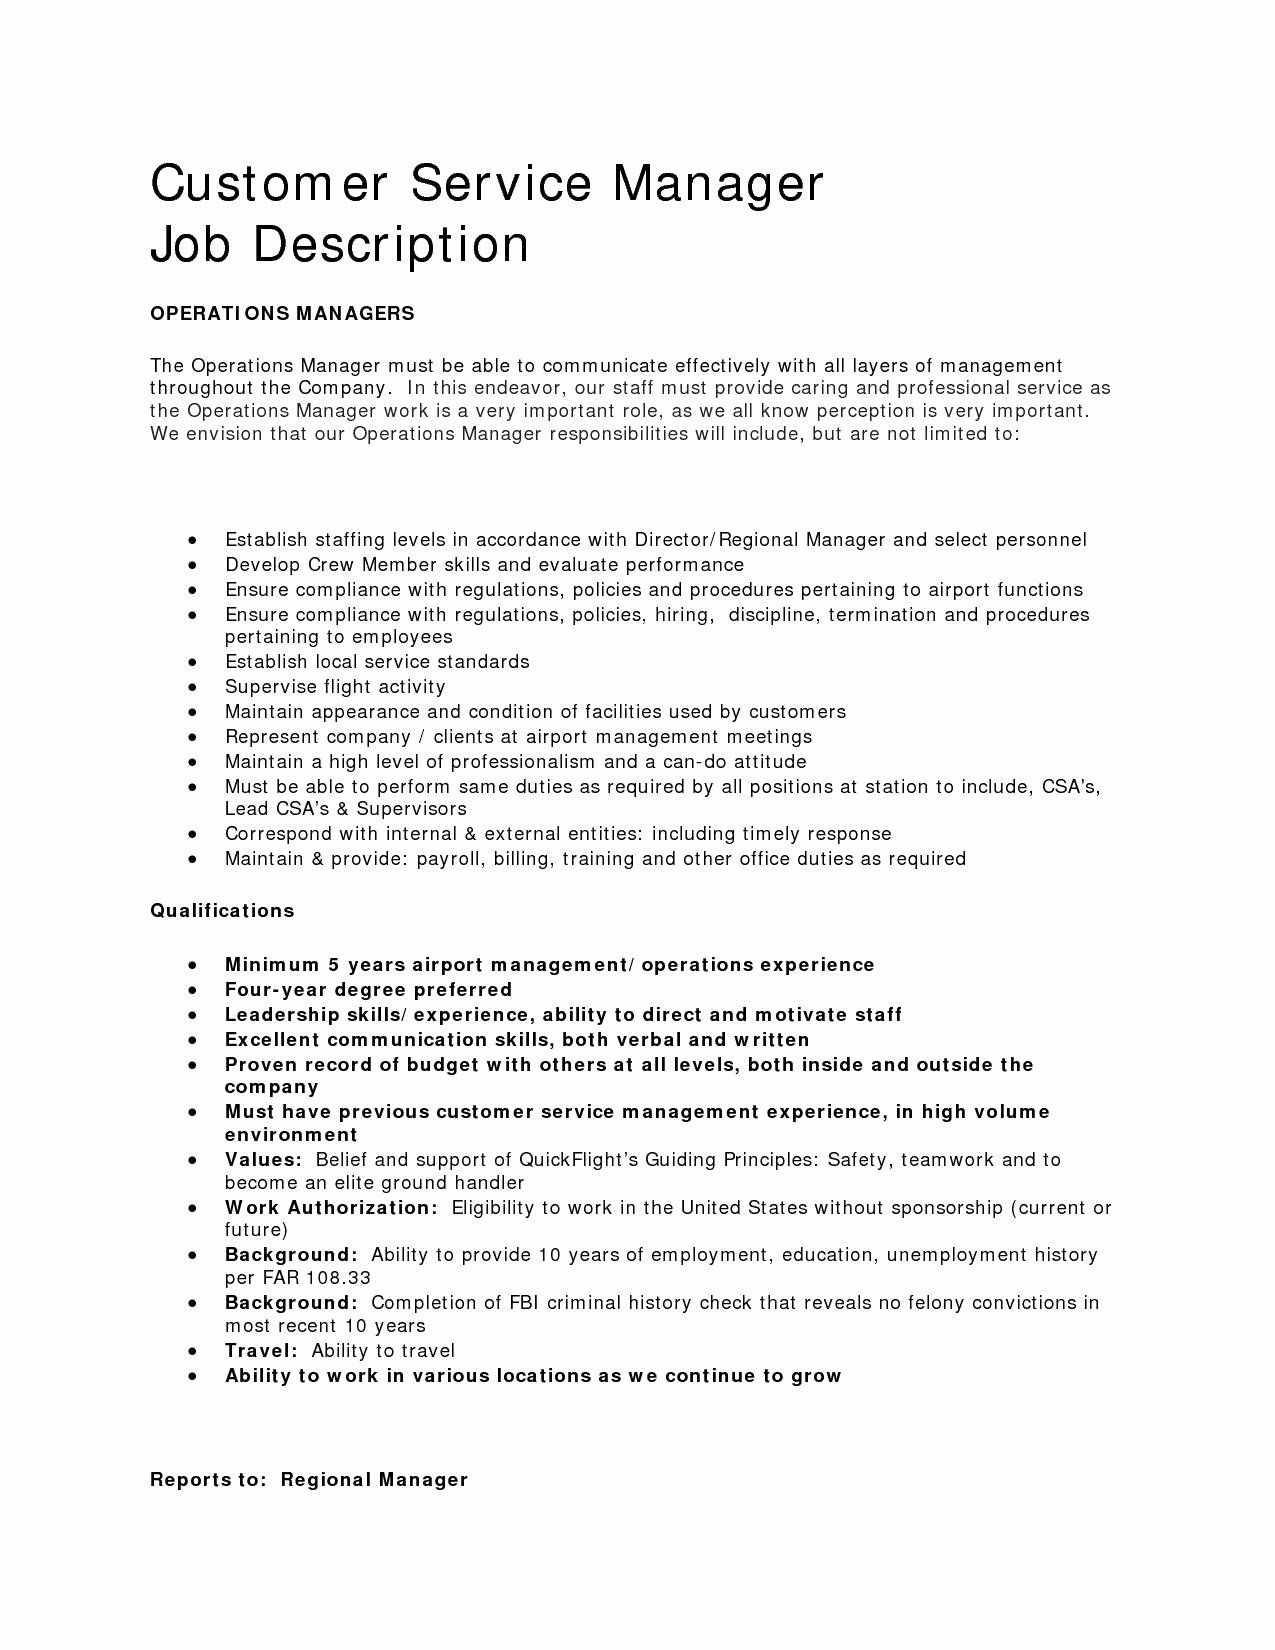 Resume Job Descriptions for Customer Service